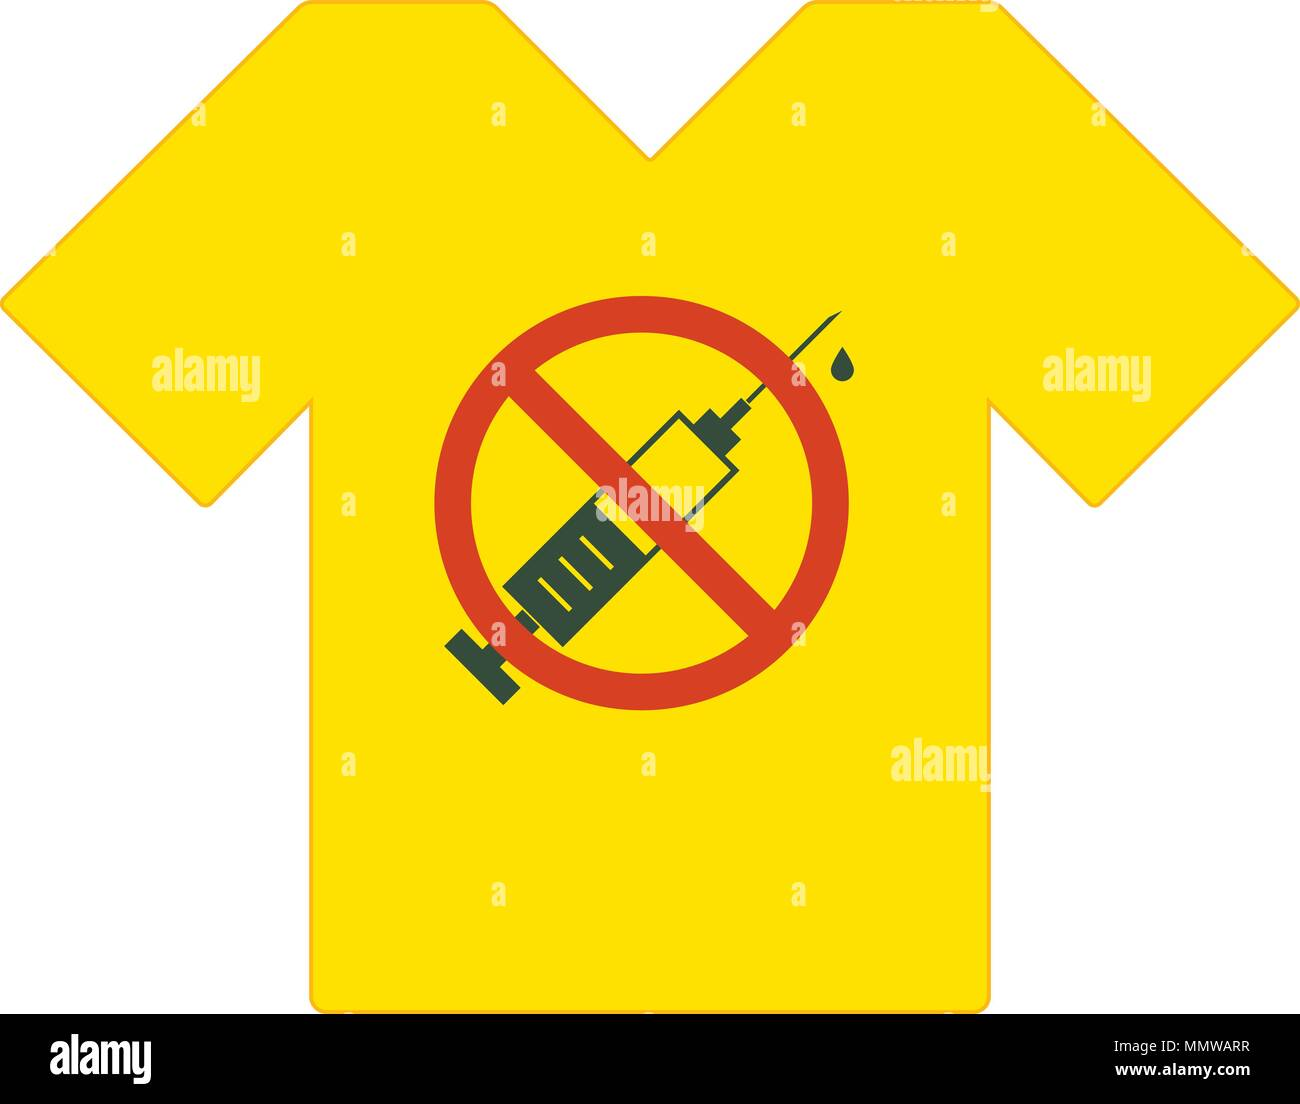 Yellow t-shirt. No drugs allowed. Syringe with forbidden sign - no drug. Syringe icon in prohibition red circle. Anti drugs. Just say no. T-shirt temp - Stock Image